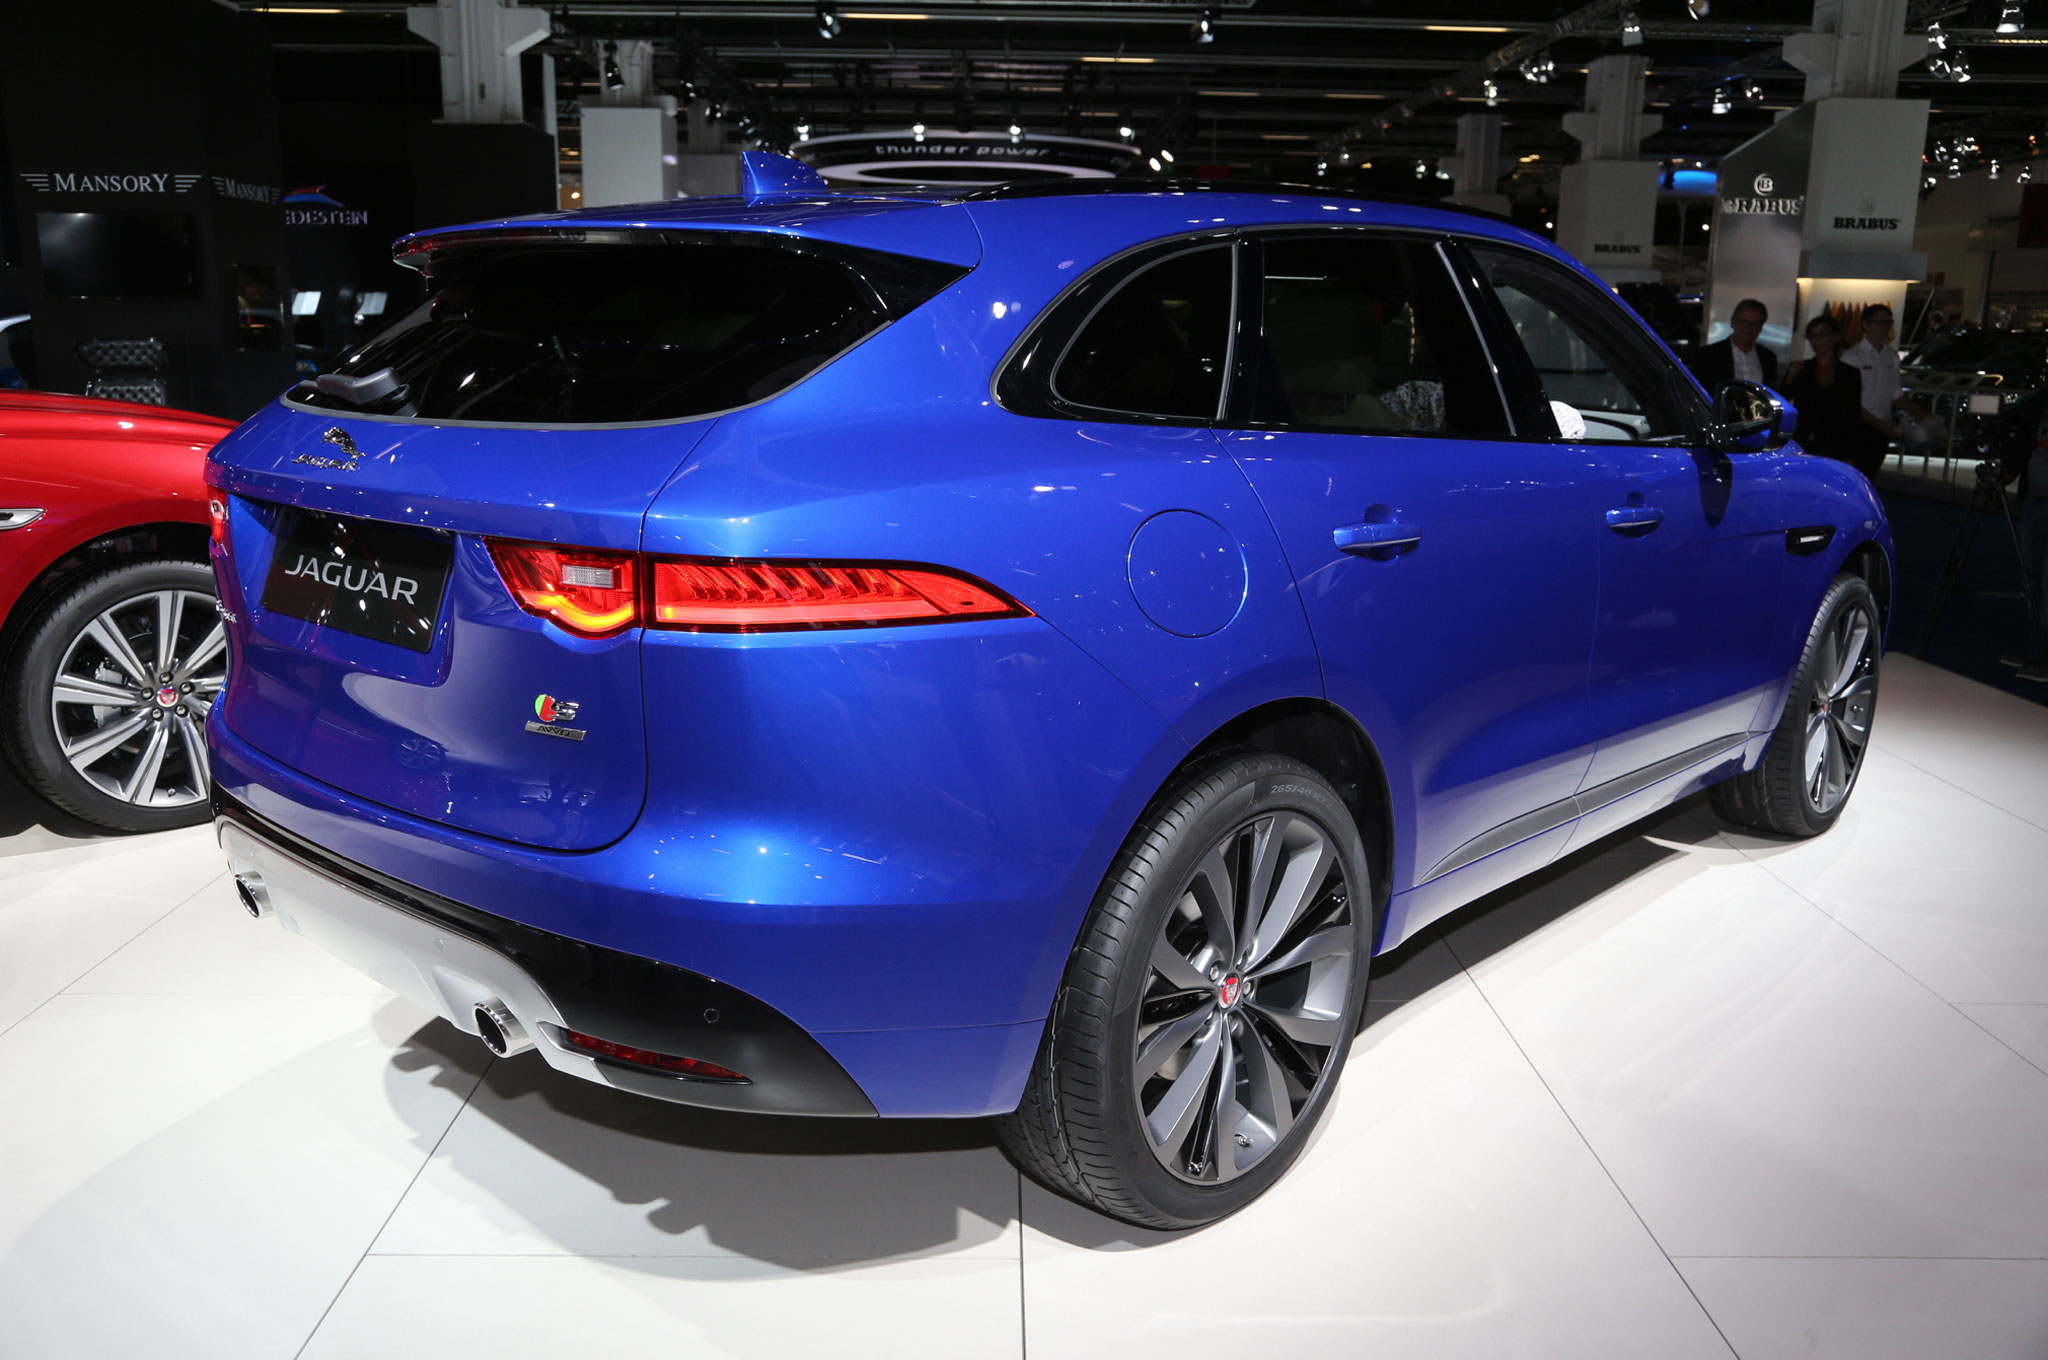 6 reasons to wait for the 2017 jaguar f-pace